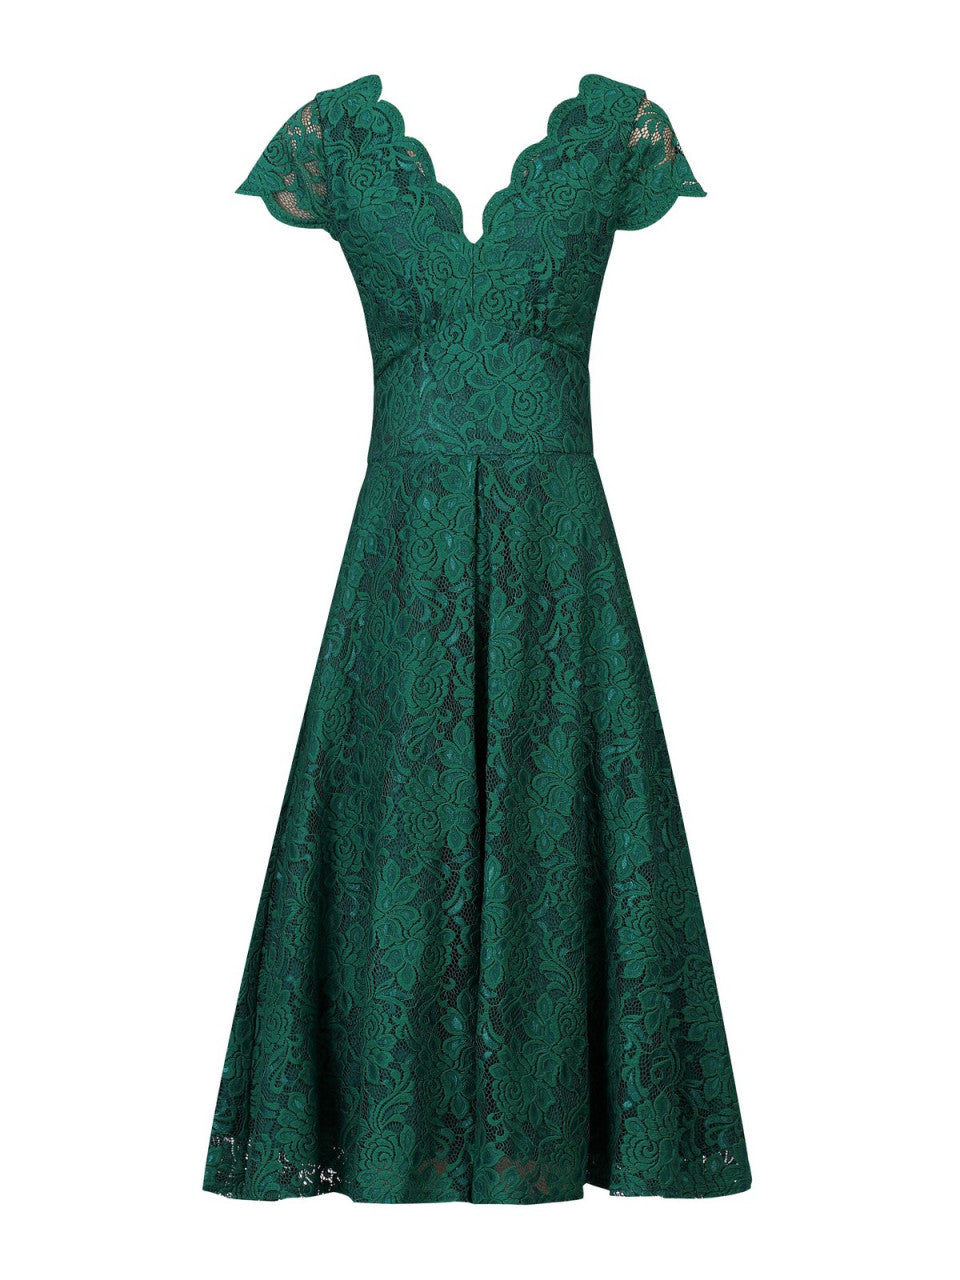 ddb6624d3 Load image into Gallery viewer, Jolie Moi Cap Sleeve Lace Midi Dress, Green  ...